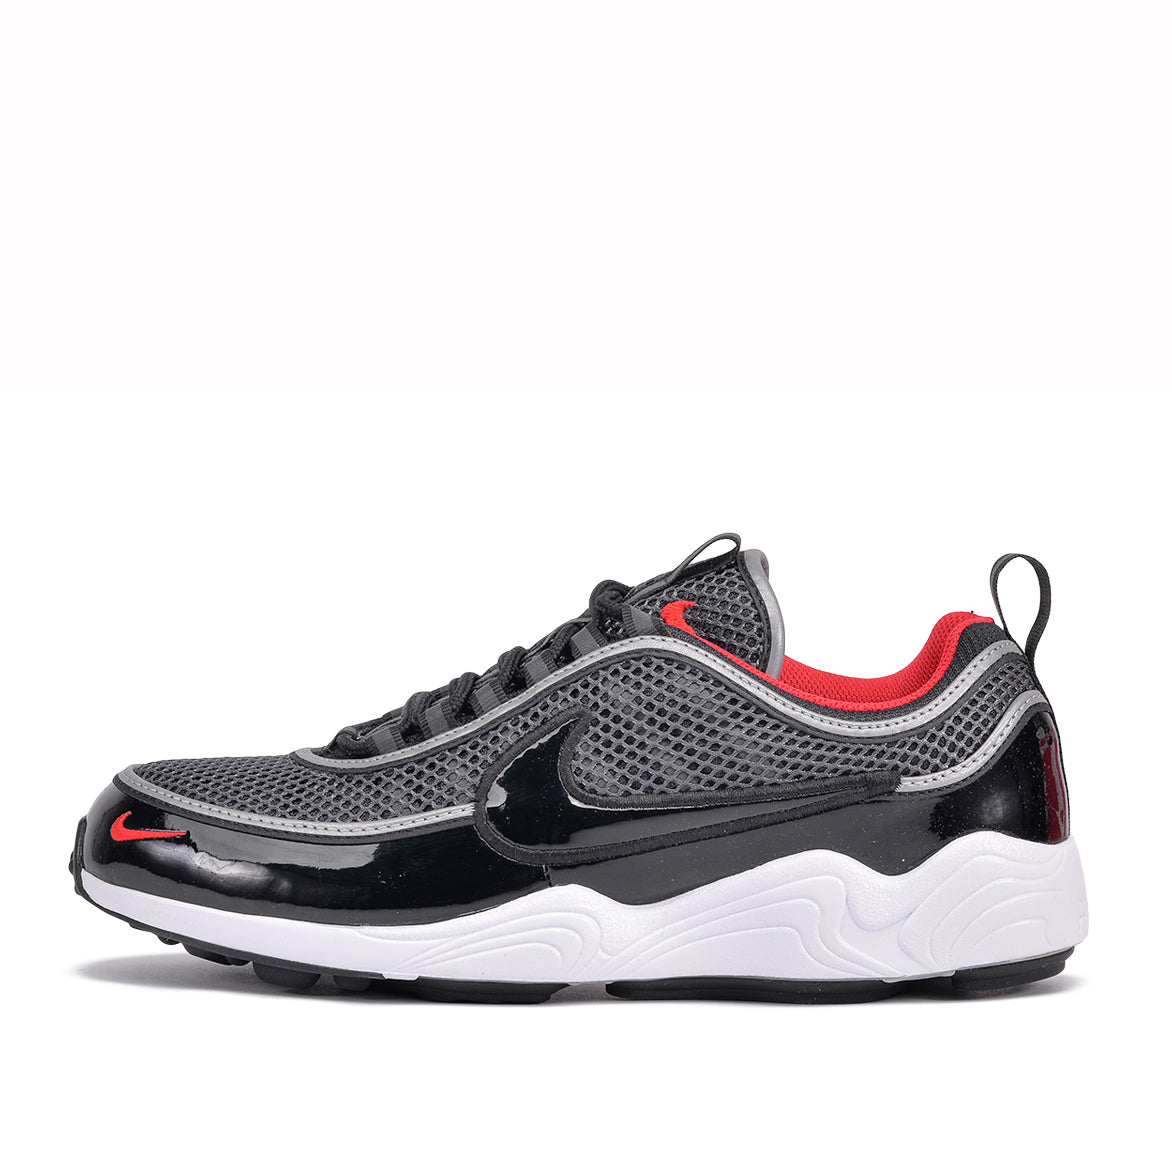 new style 1efae a555c AIR ZOOM SPIRIDON `16 - BLACK   UNIVERSITY RED   City Blue